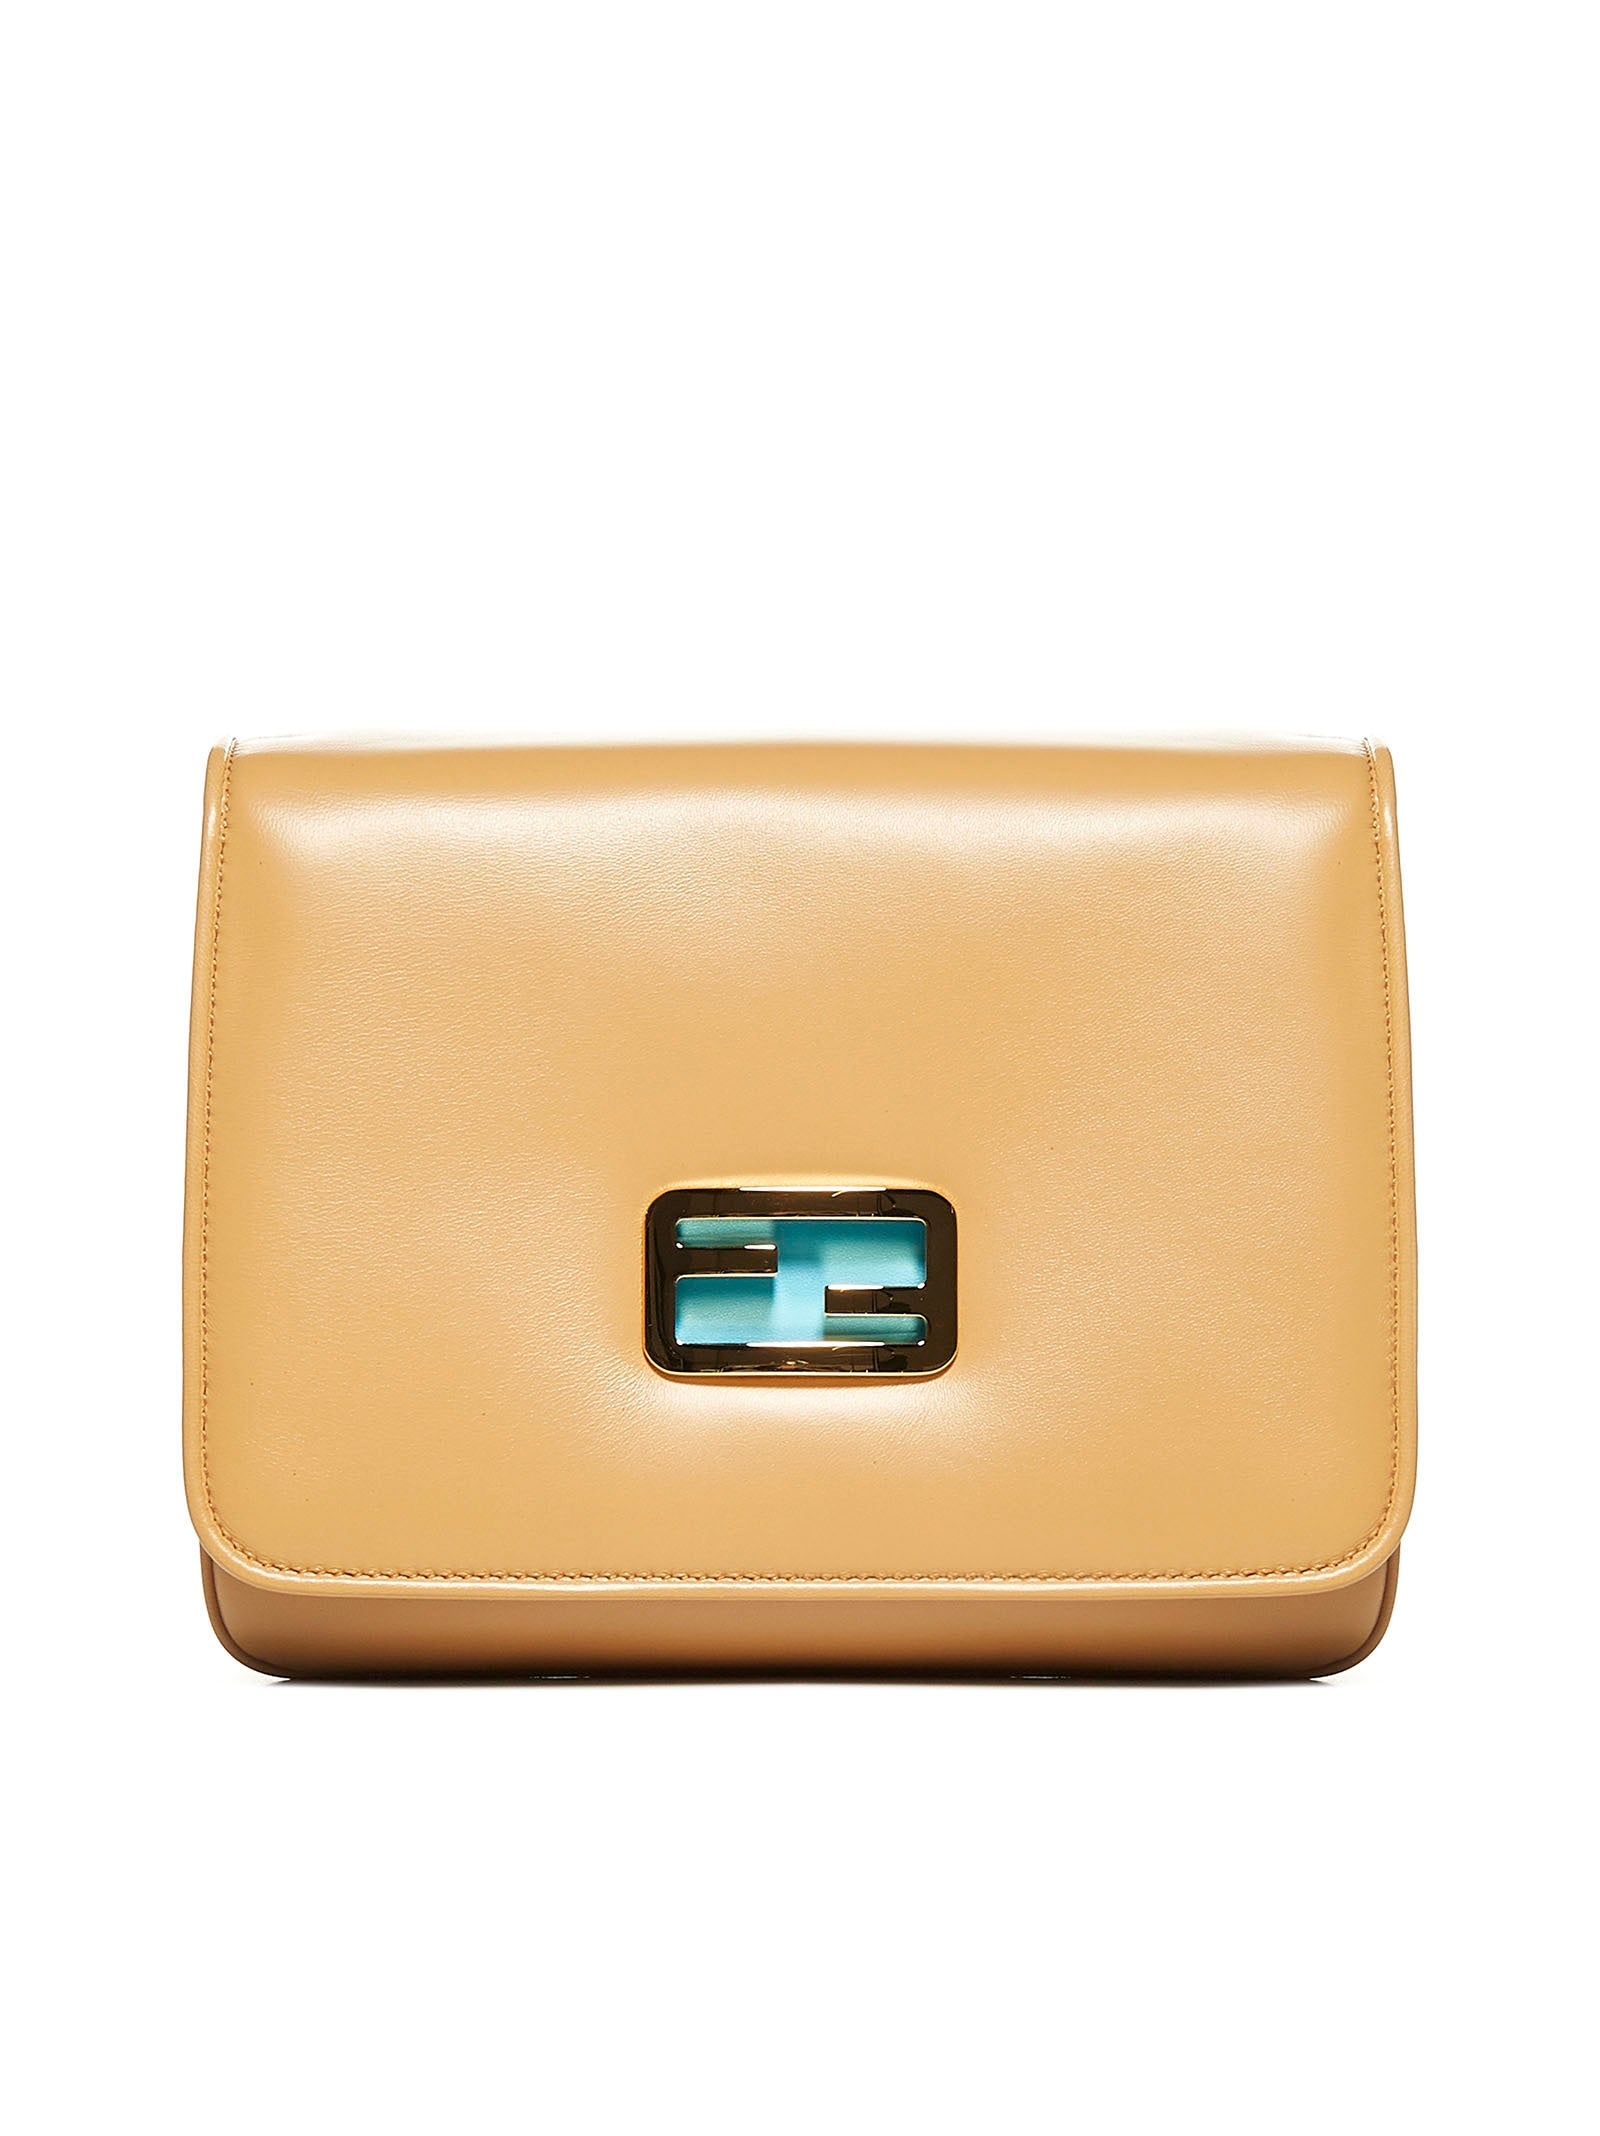 FENDI FENDI ID MEDIUM SHOULDER BAG